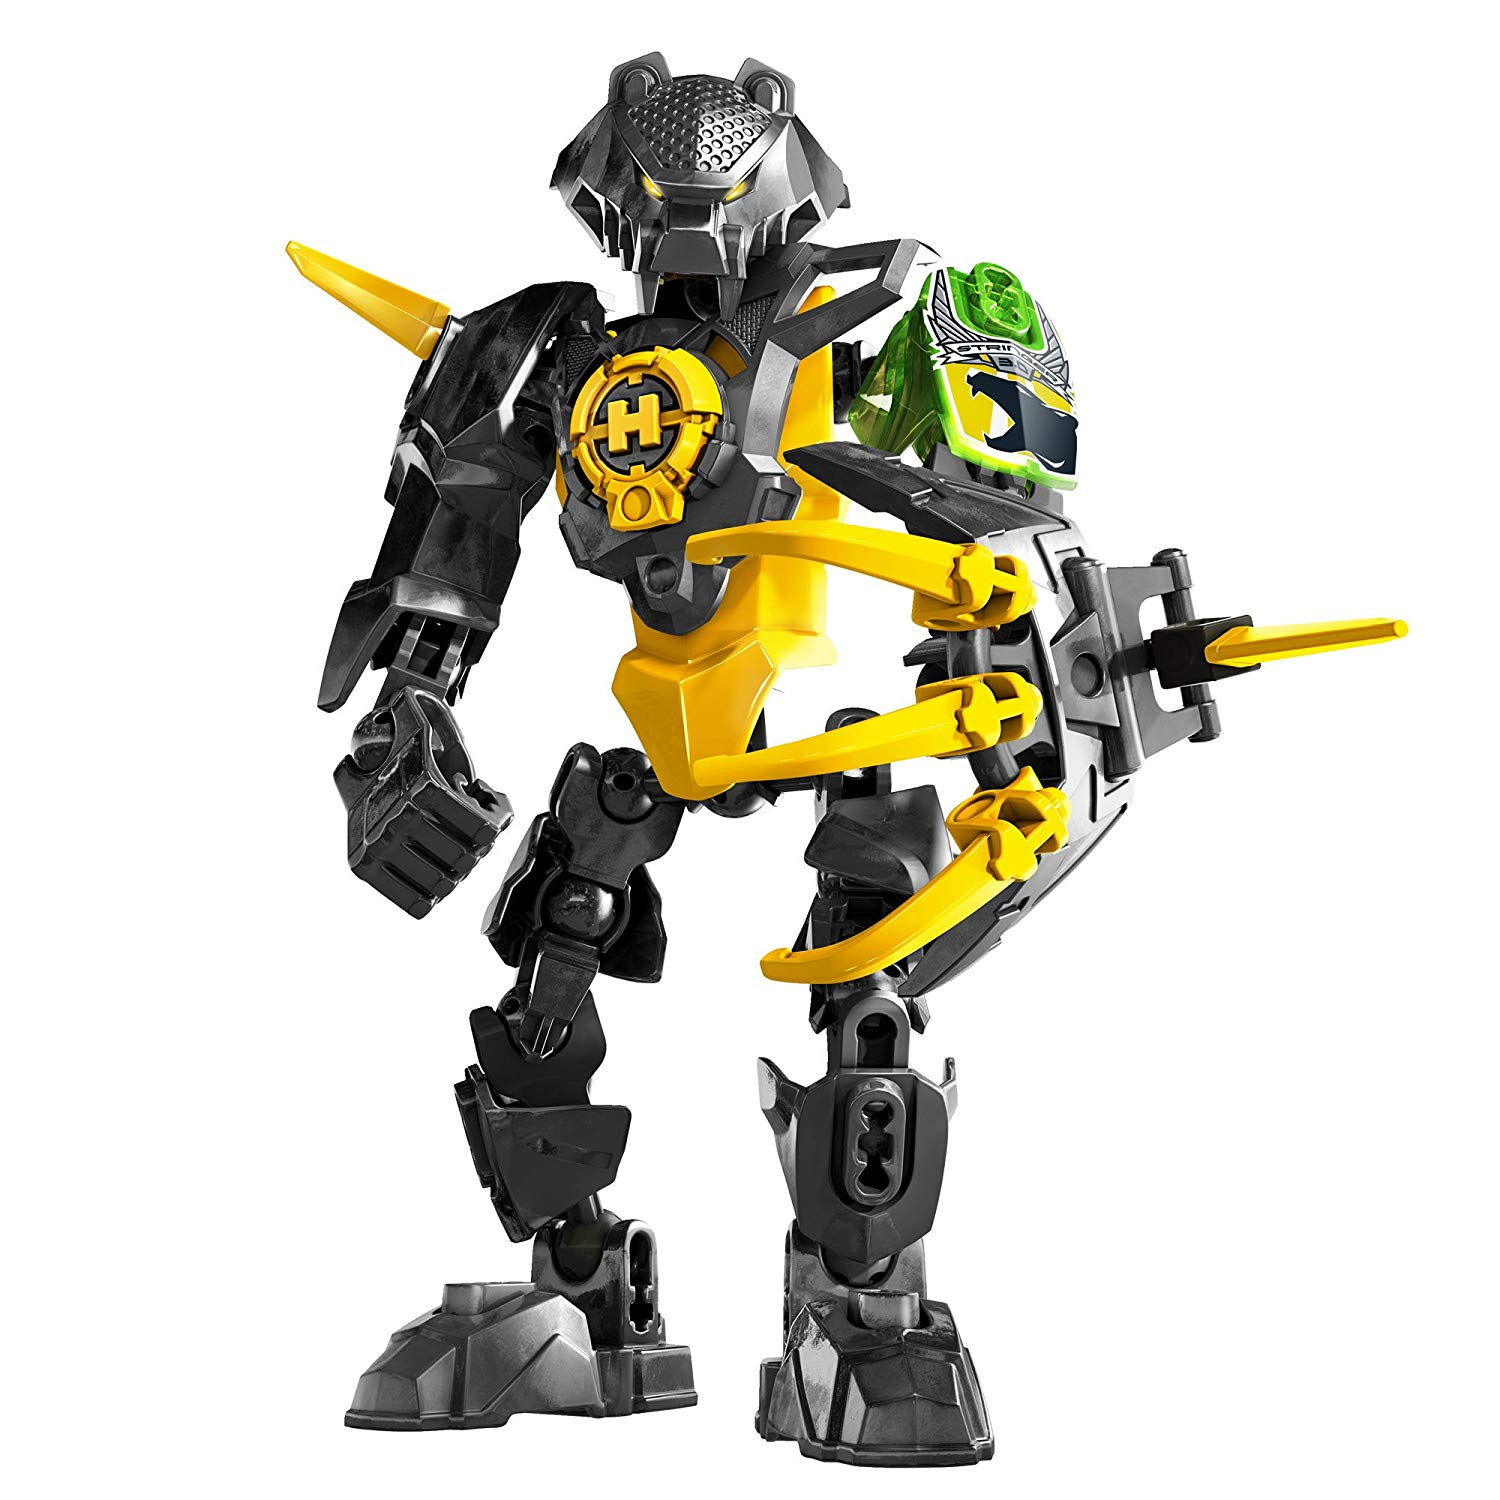 Lego hero factory and bionicle